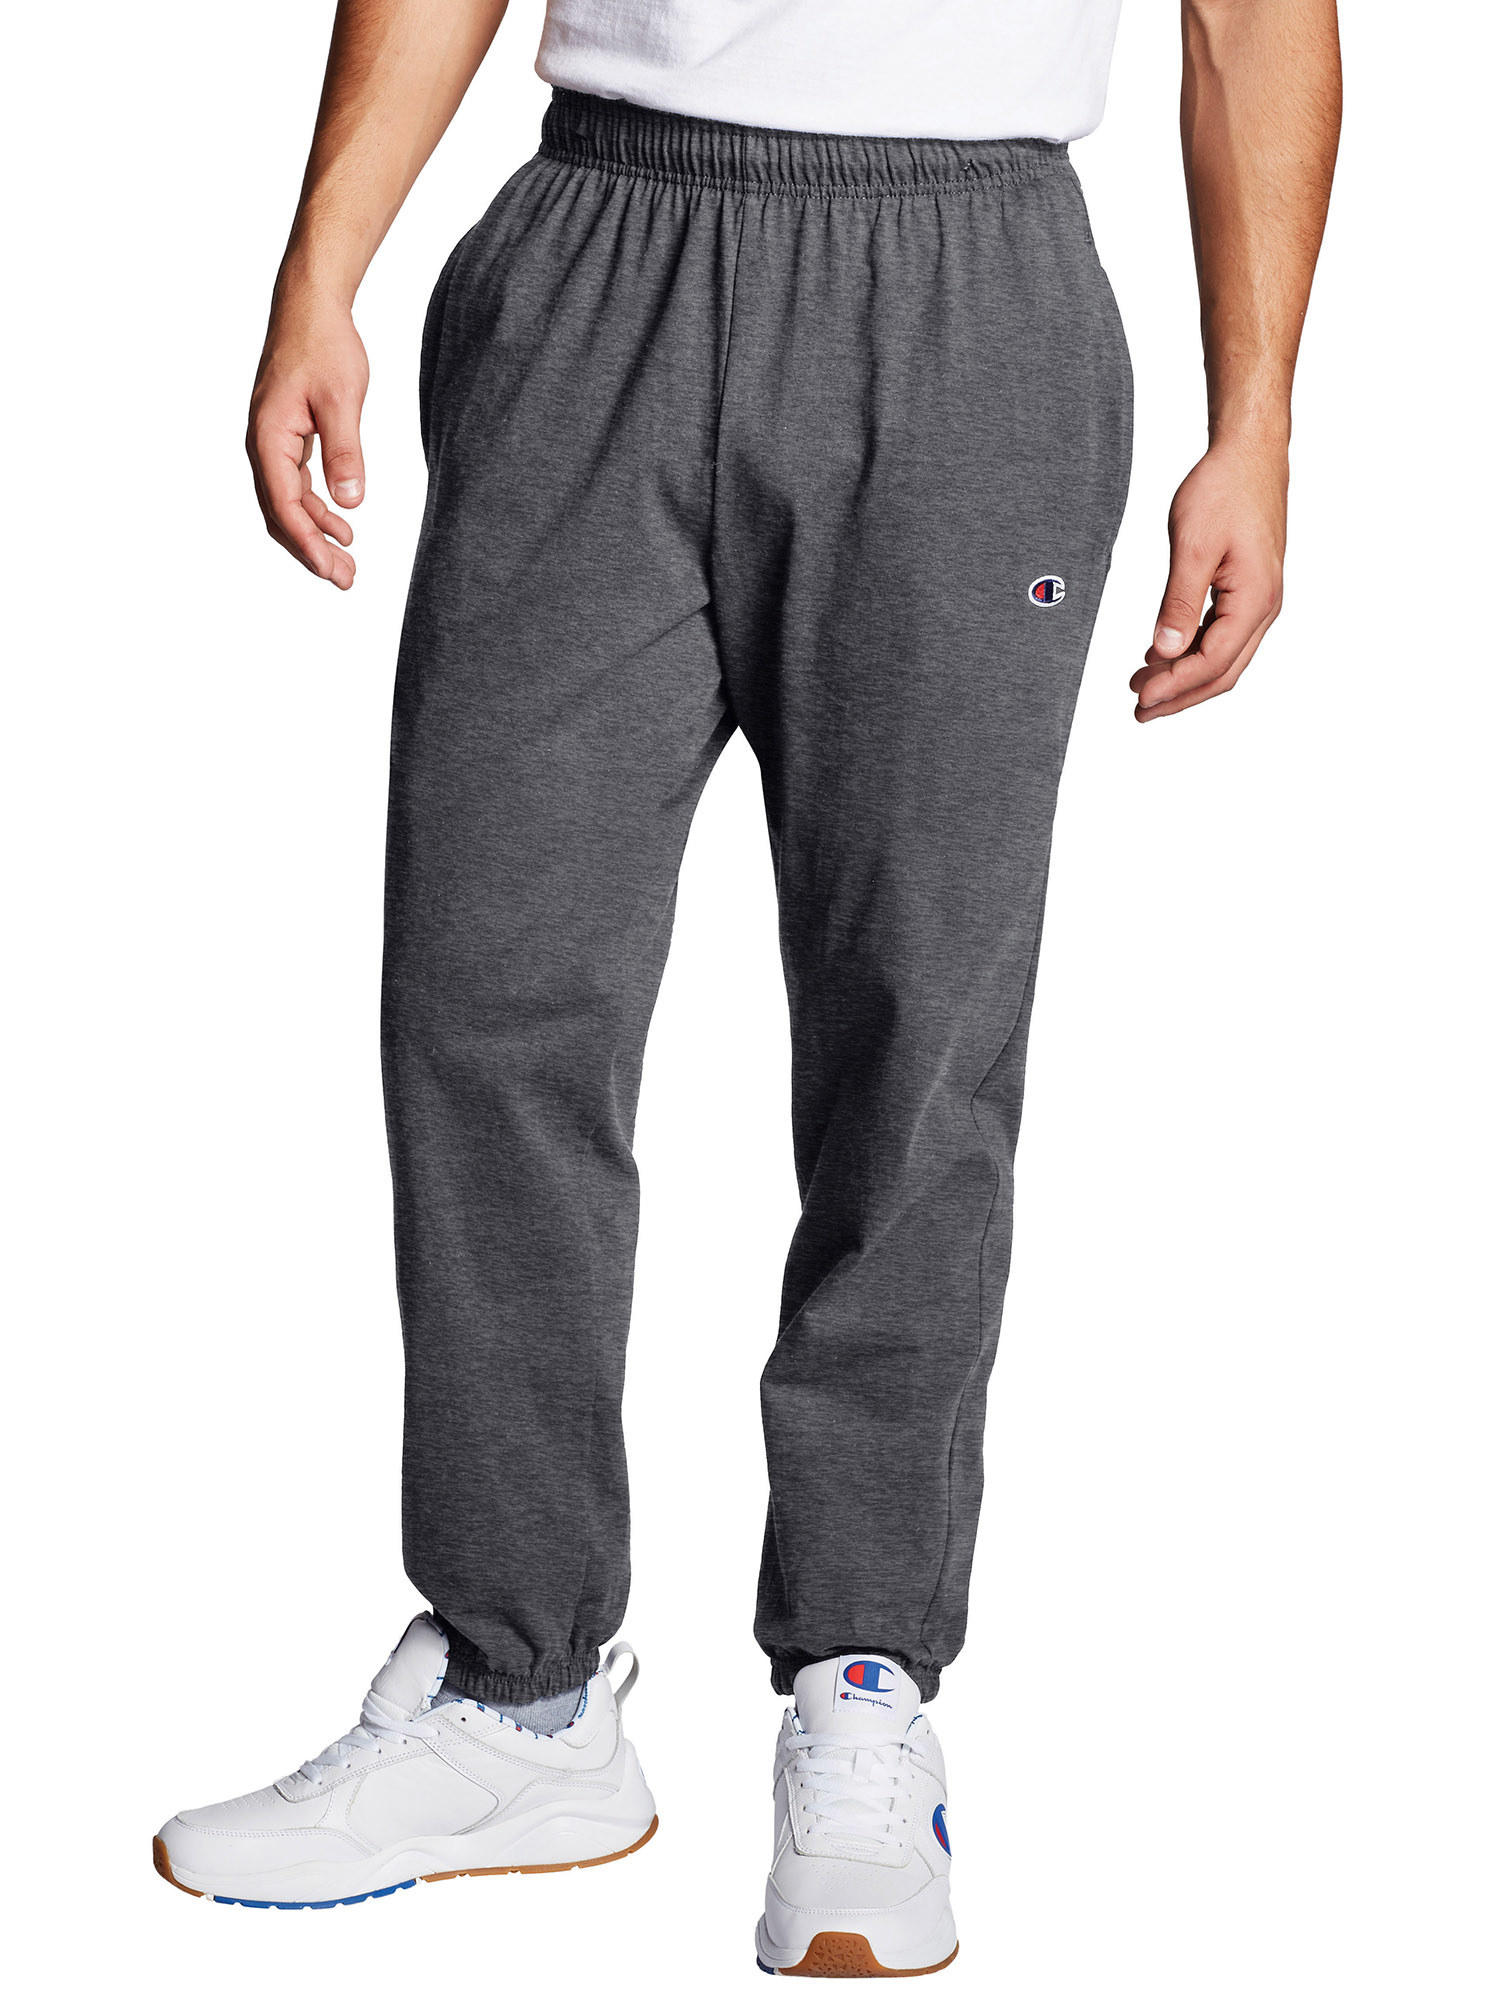 man wearing gray sweatpants